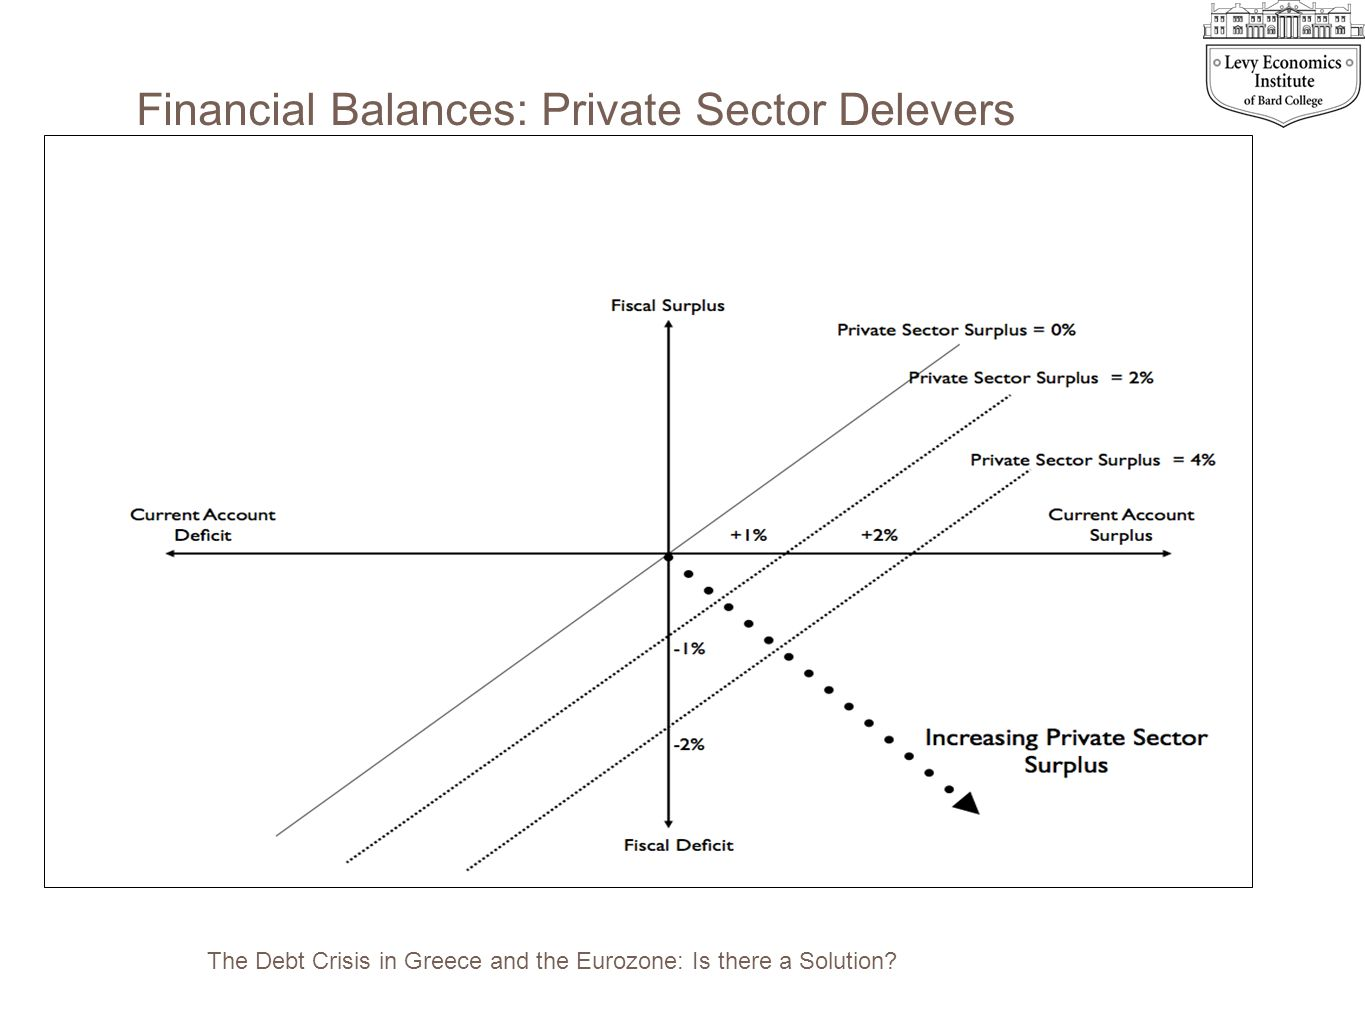 Financial Balances: Private Sector Delevers